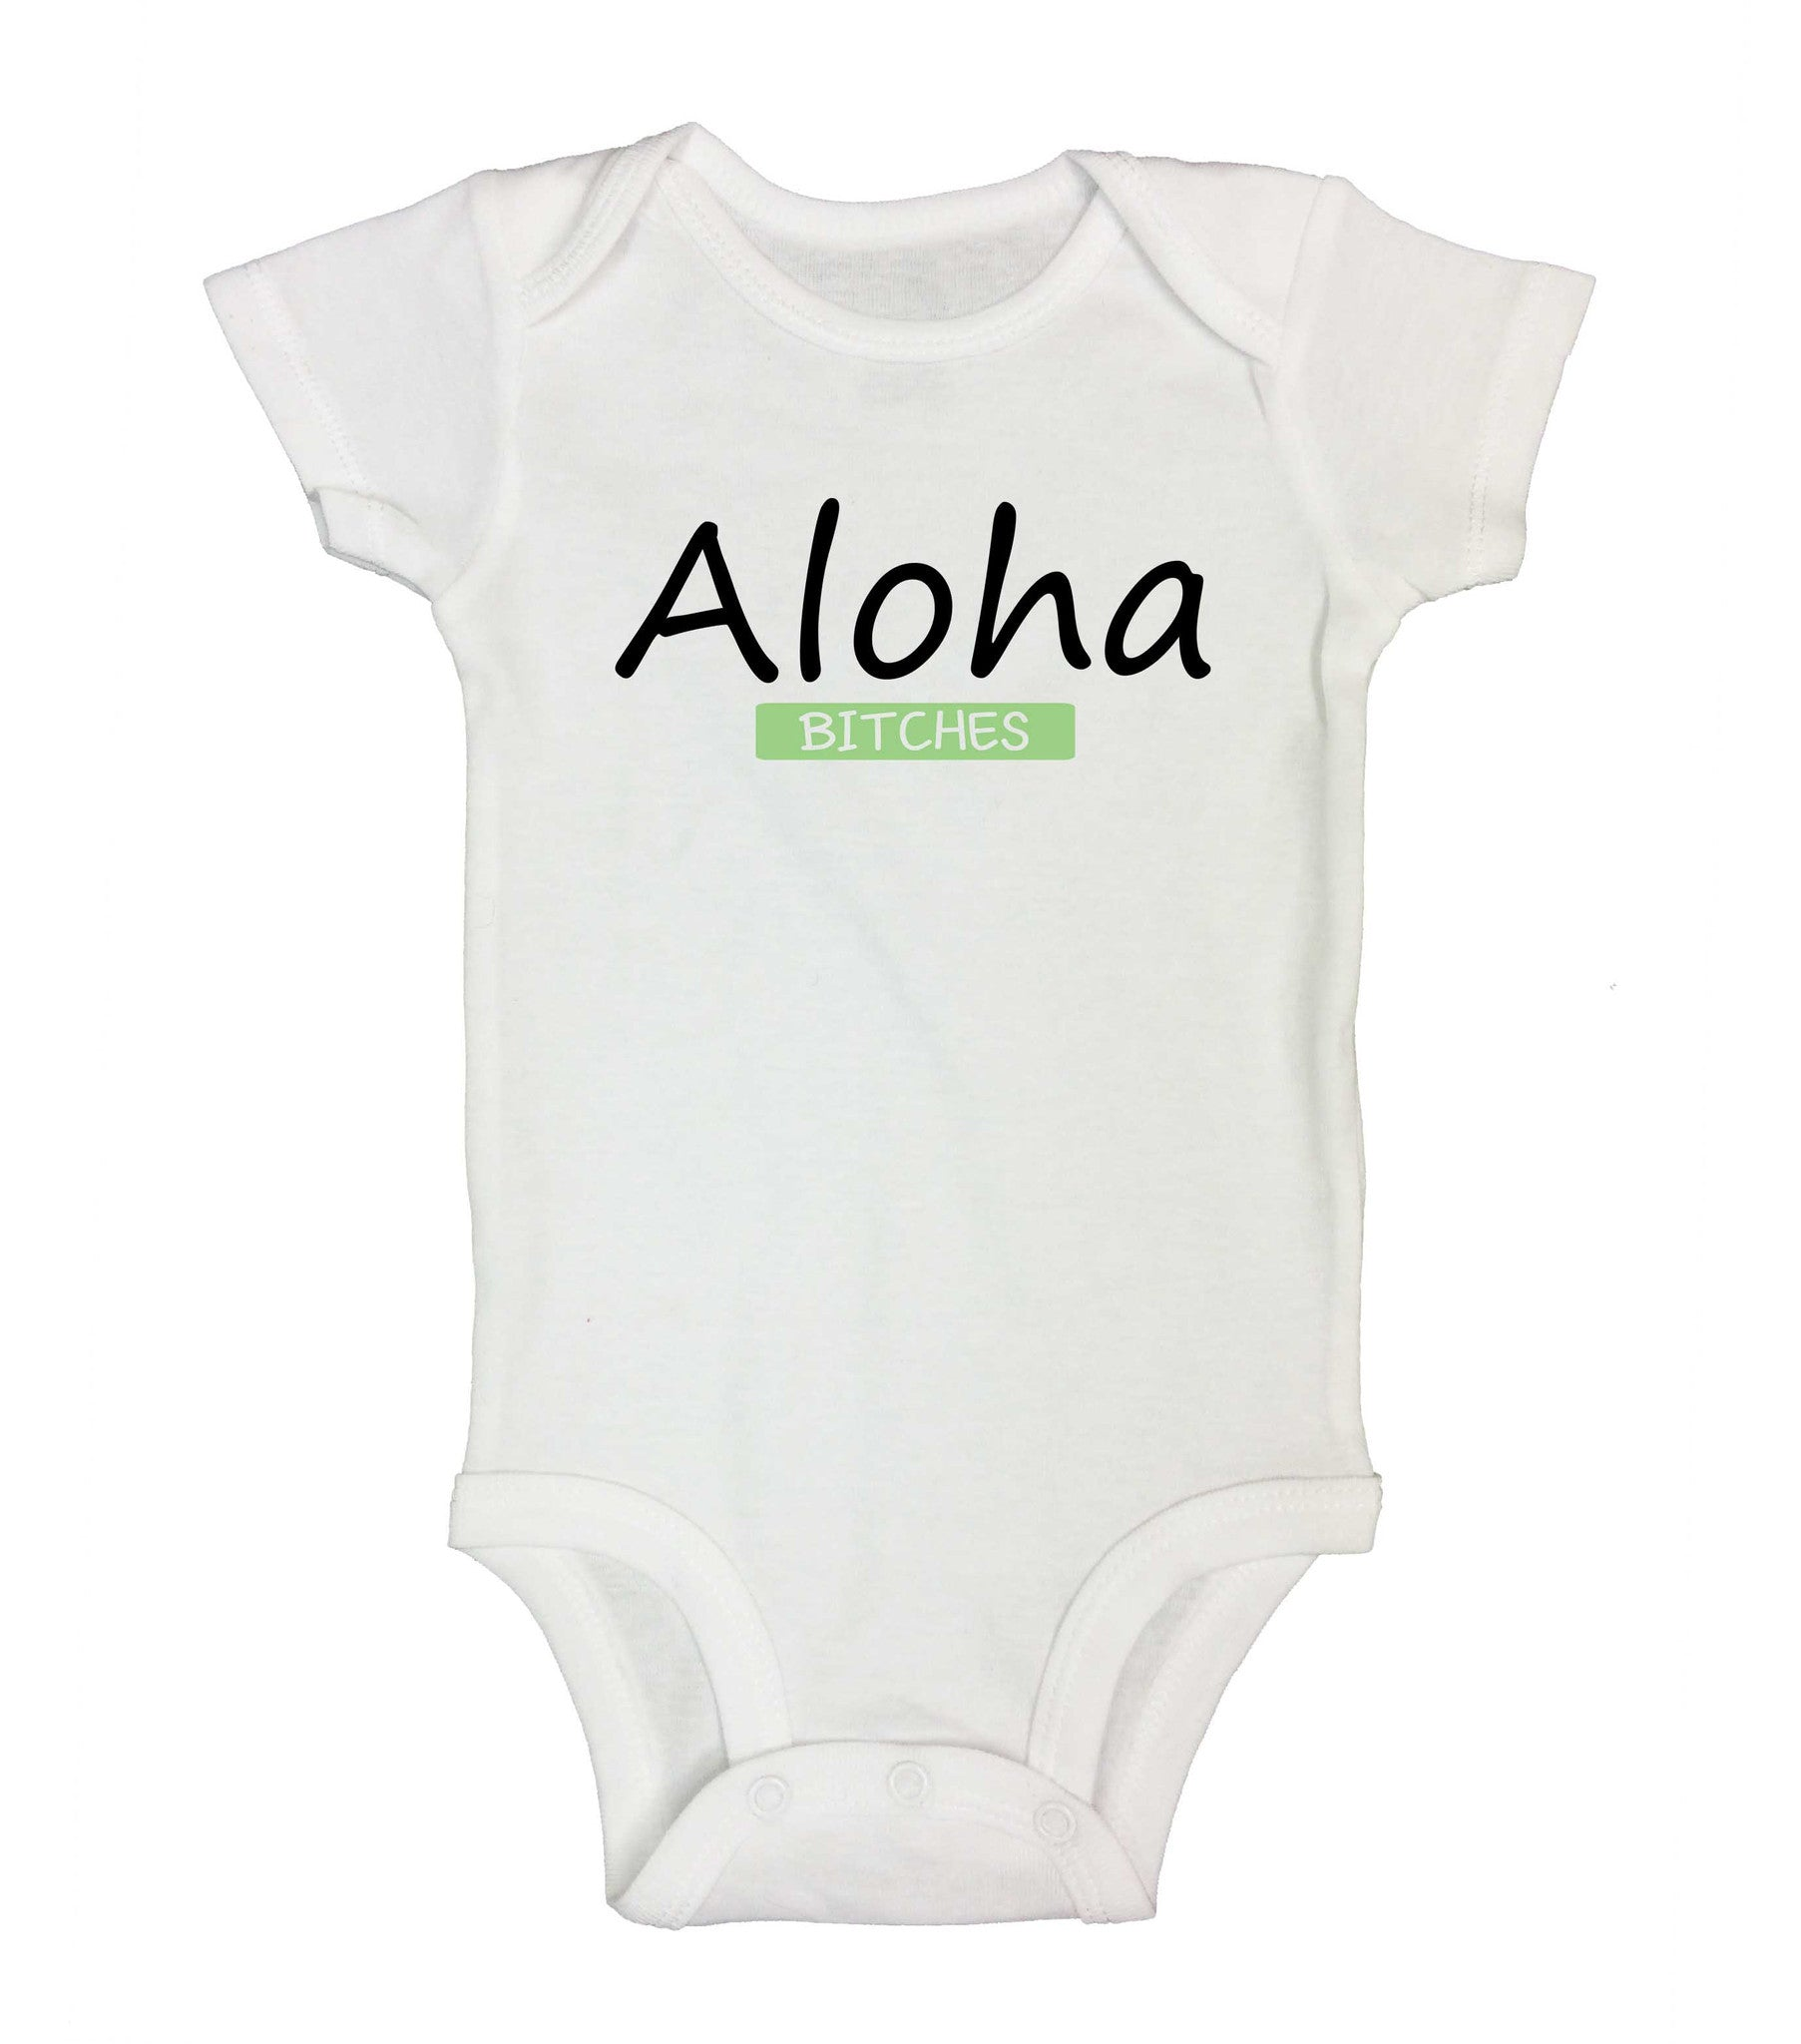 Aloha Bitches Funny Kids Onesie - 181 - Funny Shirts Tank Tops Burnouts and Triblends  - 2